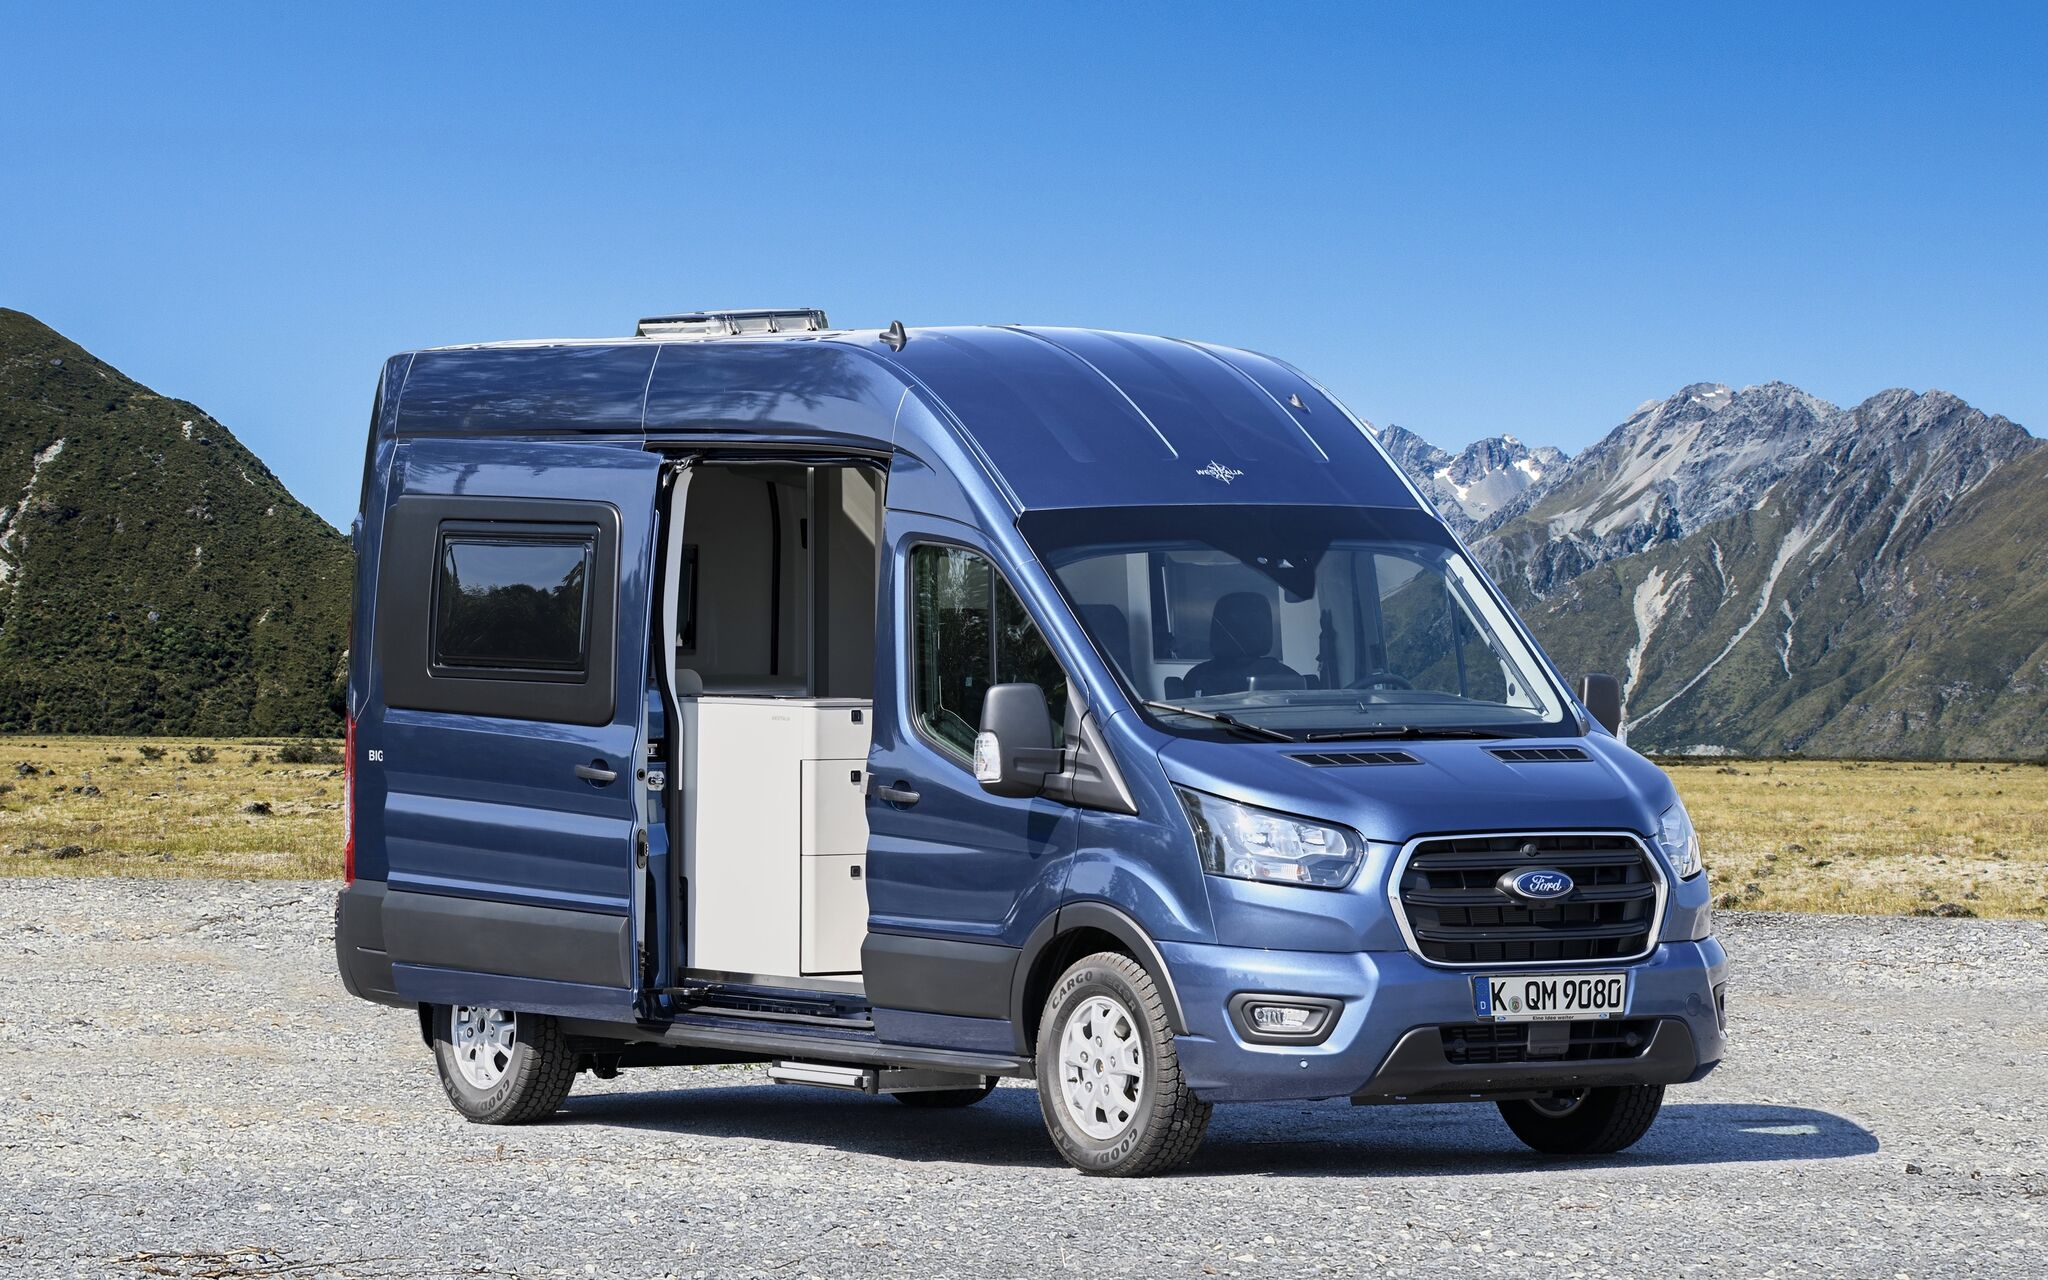 'Big Nugget' concept campervan from Ford